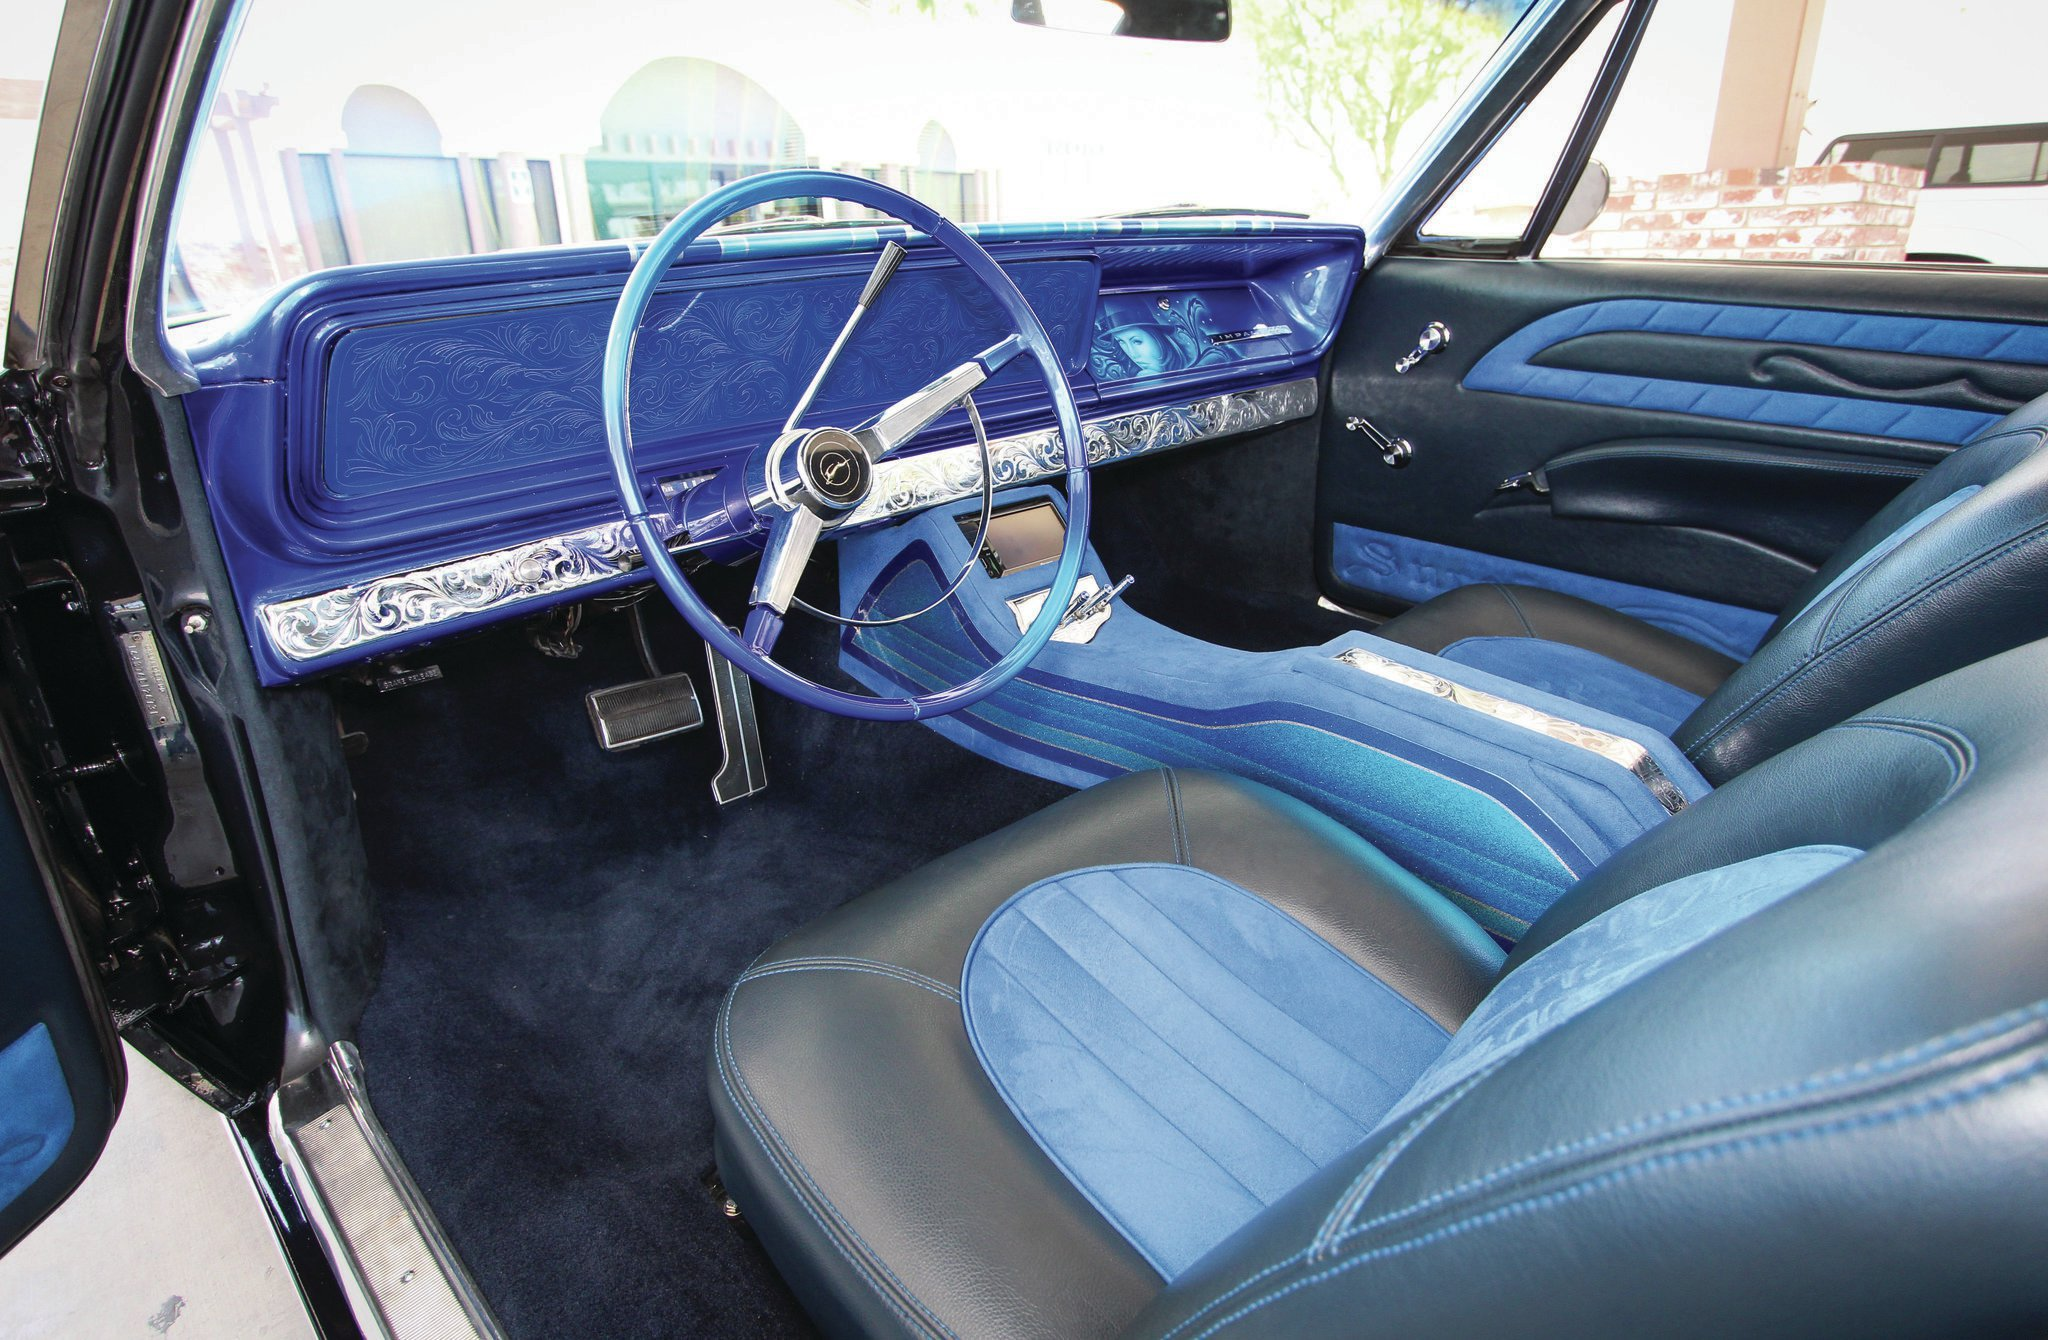 Remarkable 1966 Chevrolet Impala Interior By Unlimited Upholstery 08 Theyellowbook Wood Chair Design Ideas Theyellowbookinfo